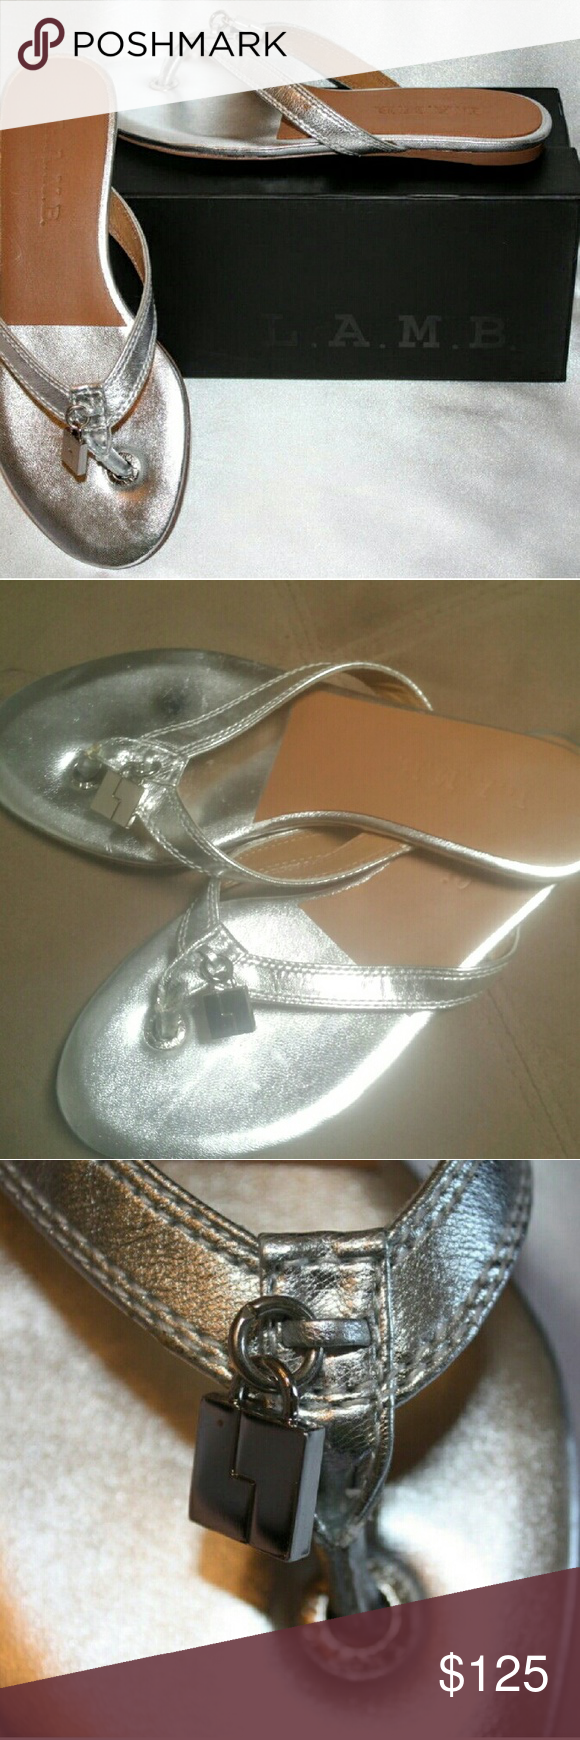 NWOB L.A.M.B. Silver Thong Sandal Brand new w/out box. Adorable & trendy L.A.M.B. Leather thongs. Padded insole, leather outsole. Retail $199 L.A.M.B. Shoes Sandals